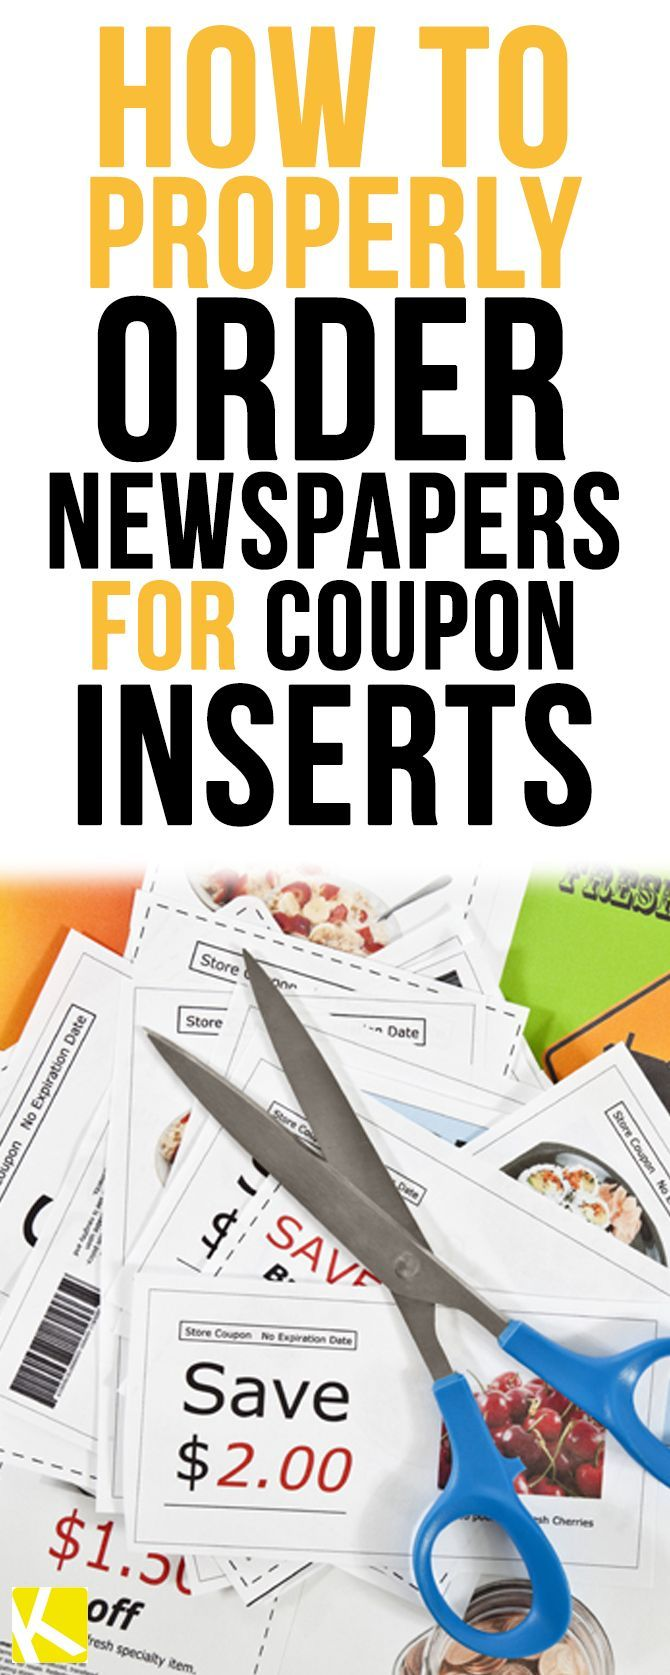 Where can I get Coupon Inserts in bulk, large quantities of or more inserts each week. For free or at the lowest price pennies on the dollar.